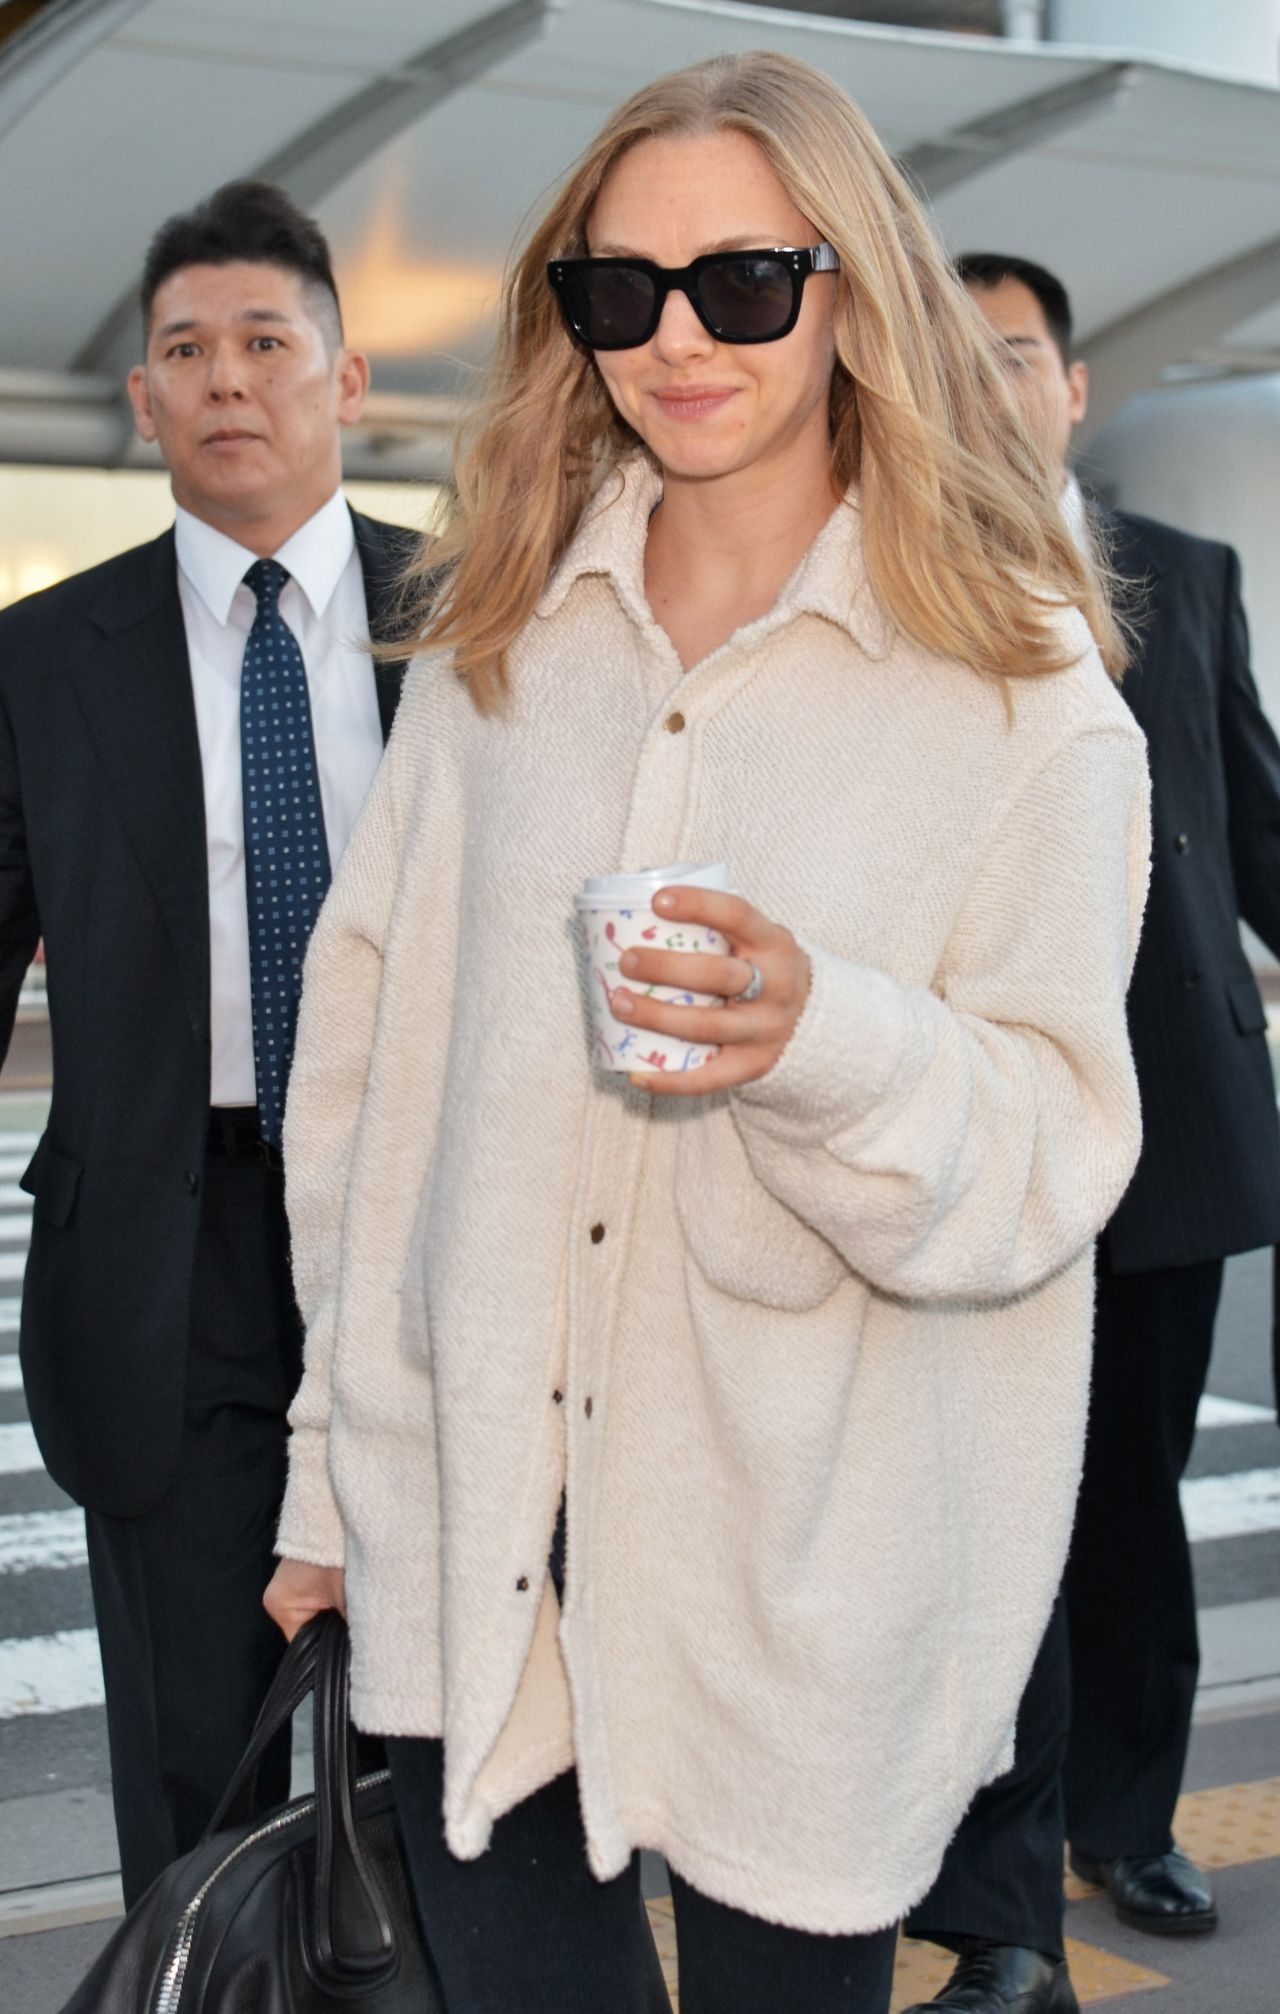 Image result for amanda seyfried in the airport